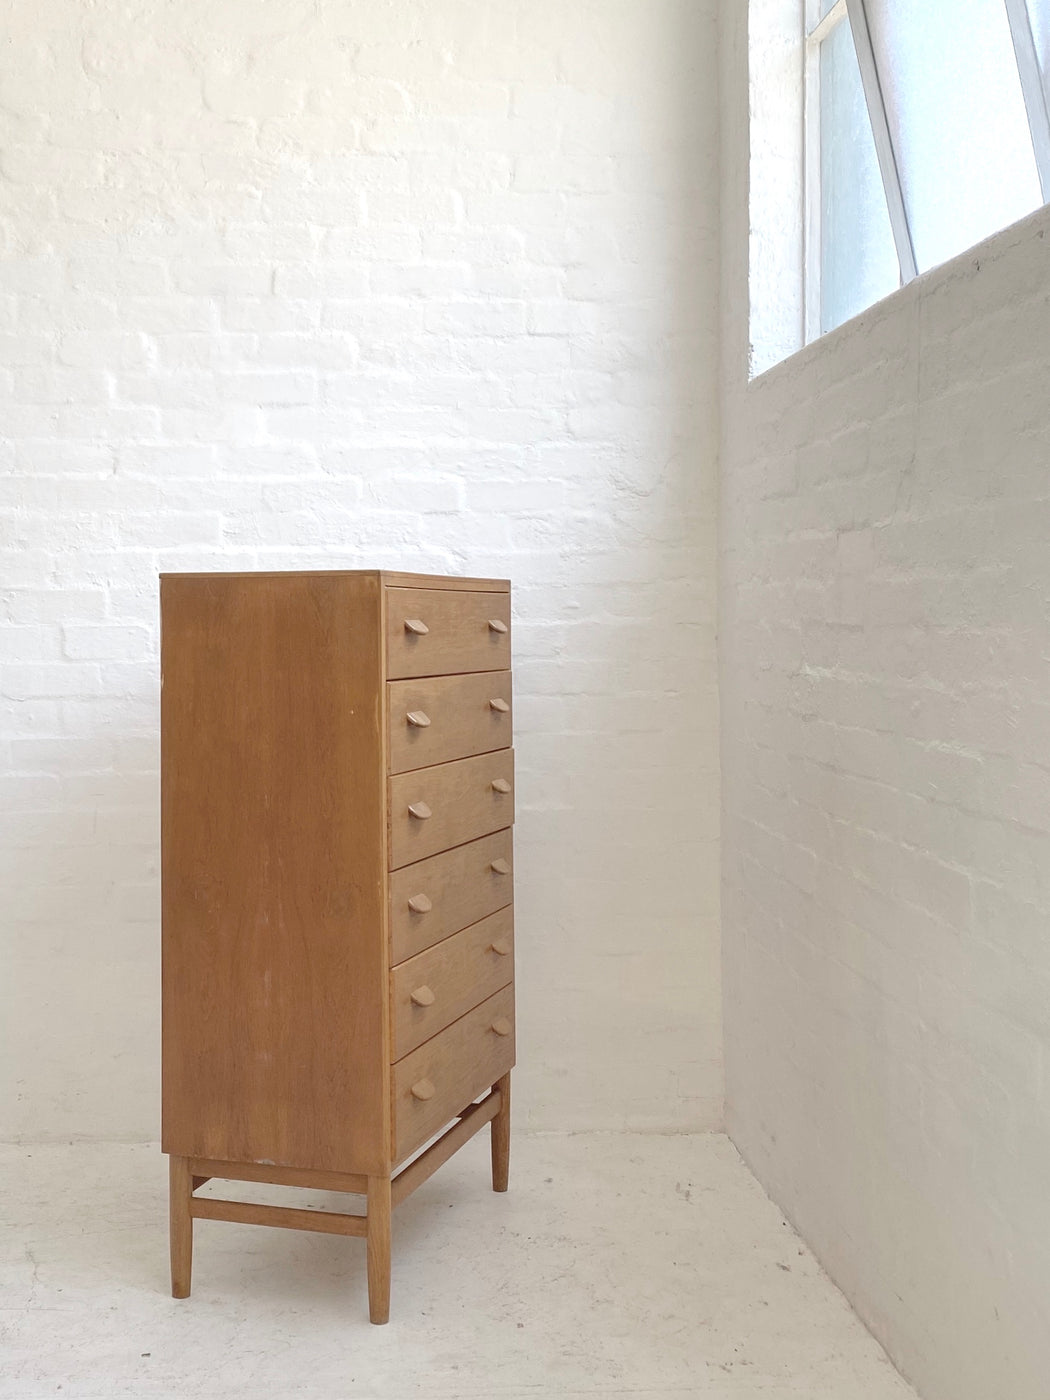 Poul Volther 'Model F17' Oak Tallboy Drawers